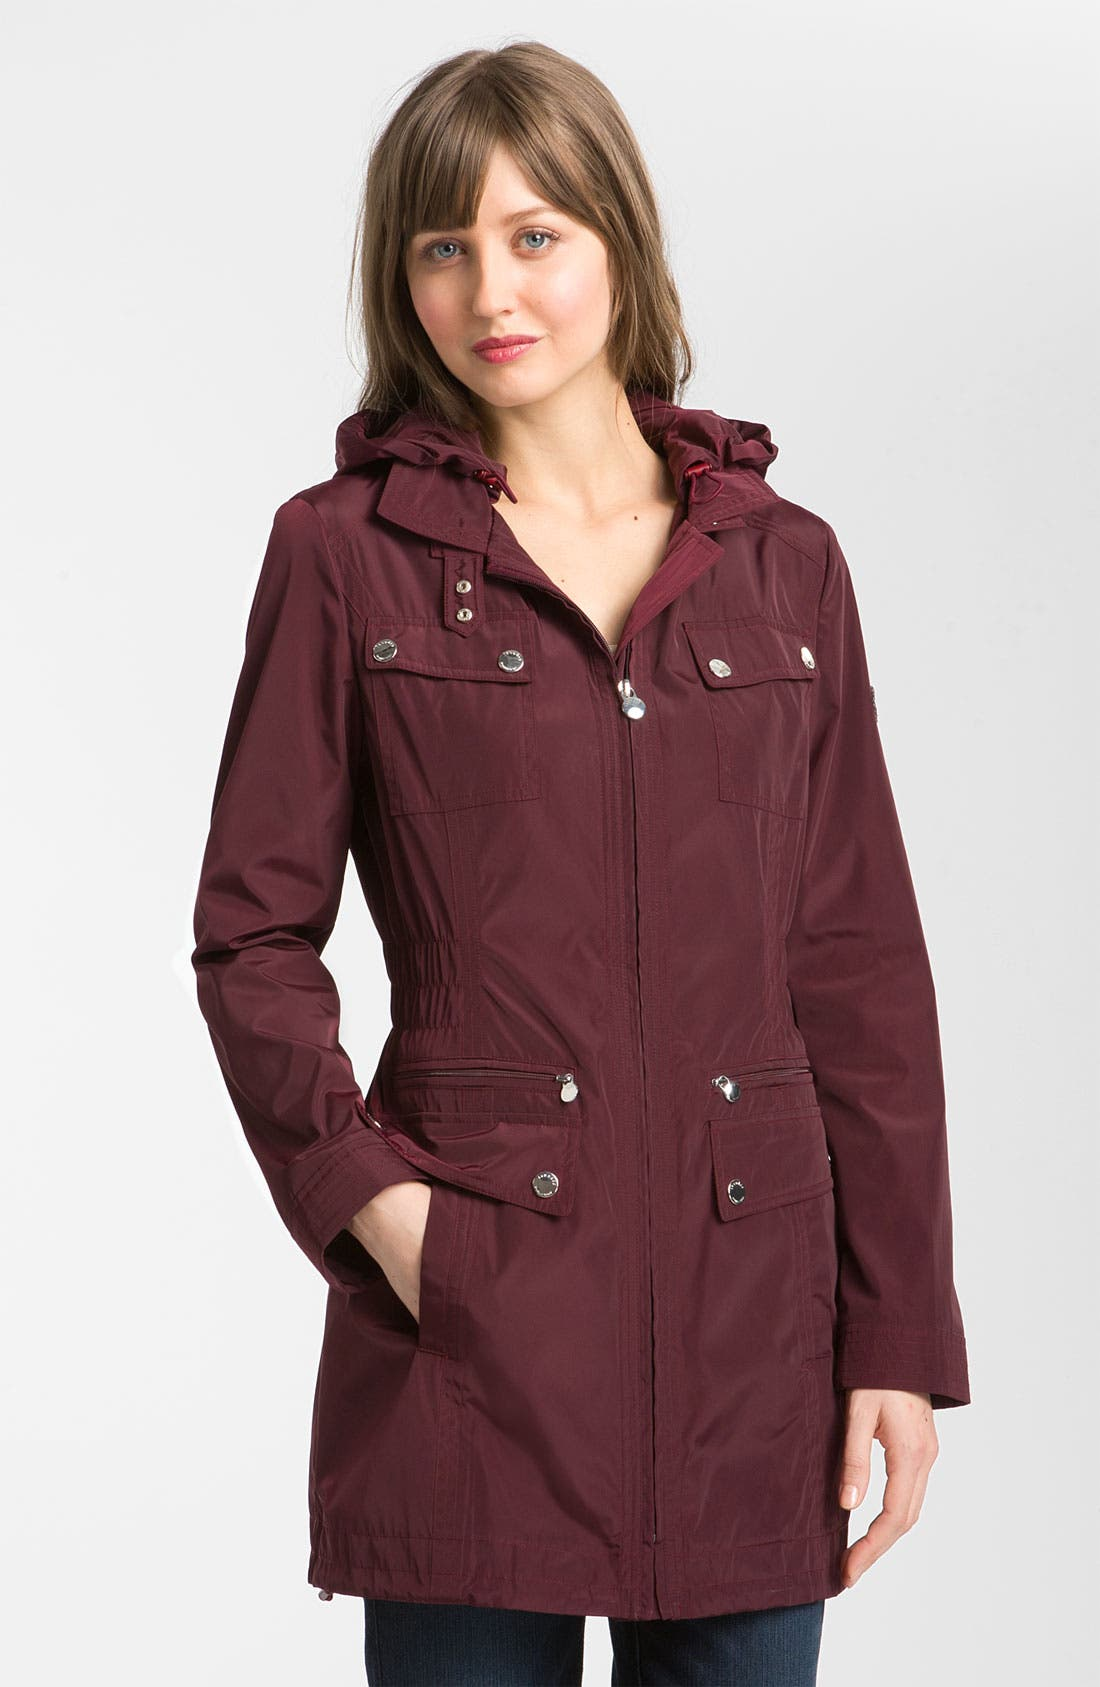 Main Image - Laundry by Shelli Segal Packable Anorak